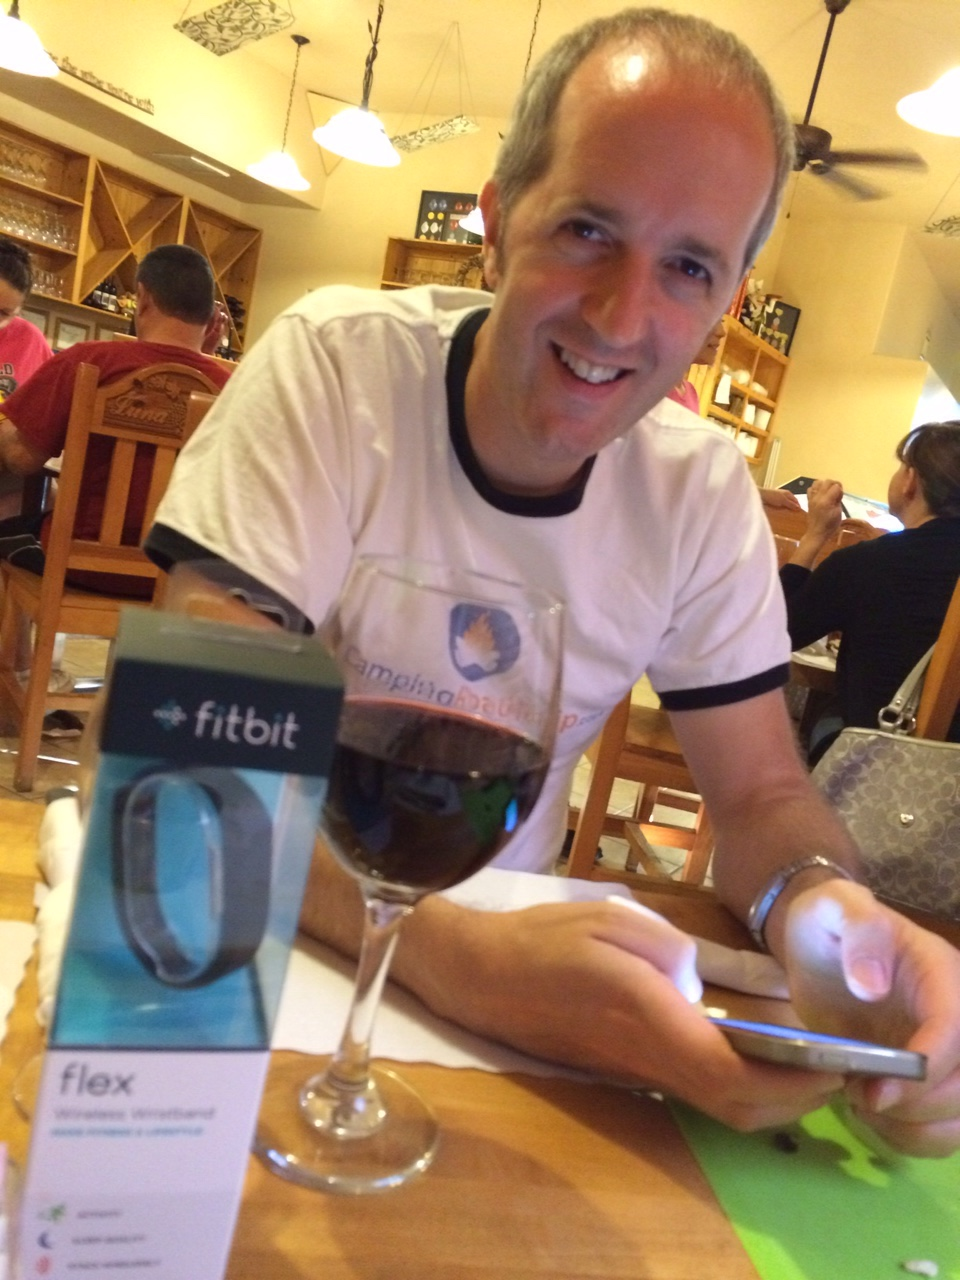 English hubby with wine and fitbit